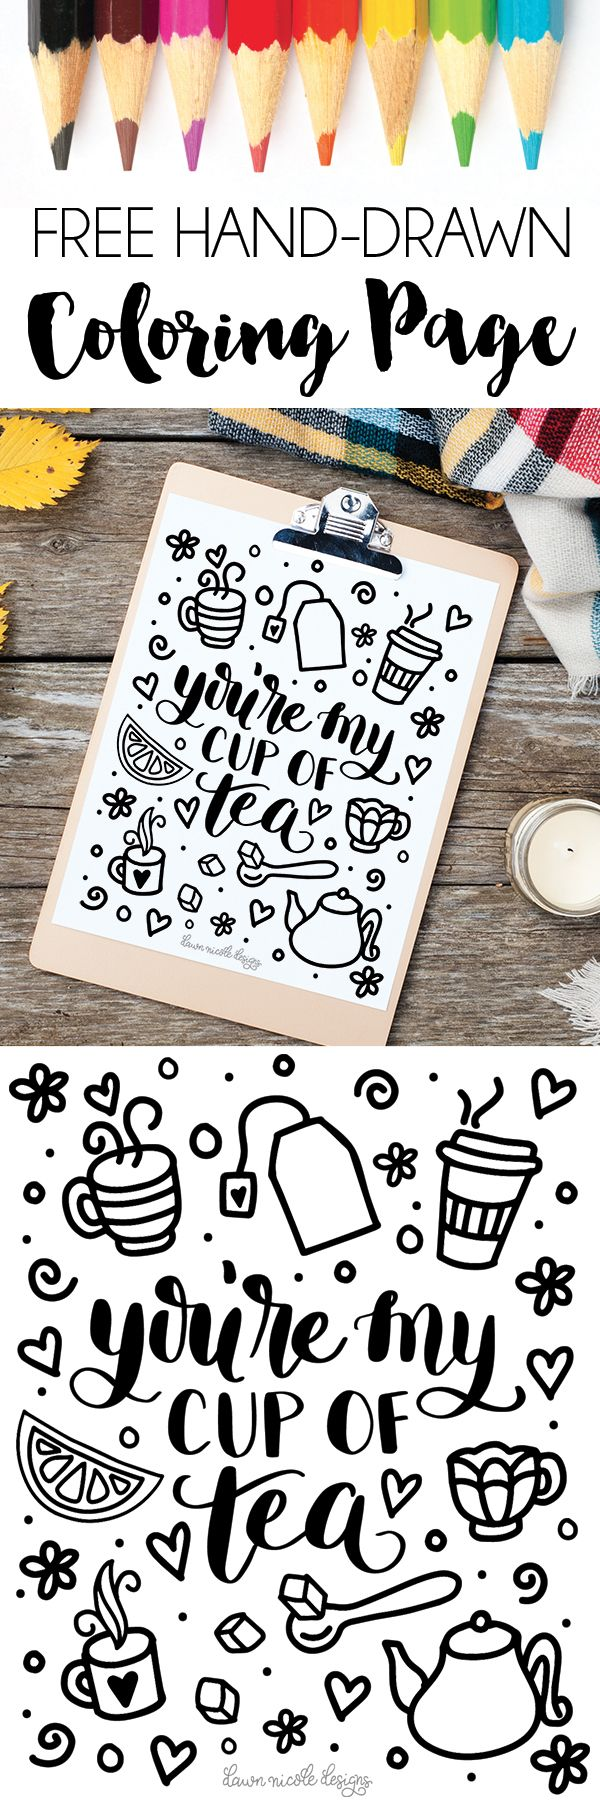 Free coloring pages end of school - Cup Of Tea Free Coloring Page